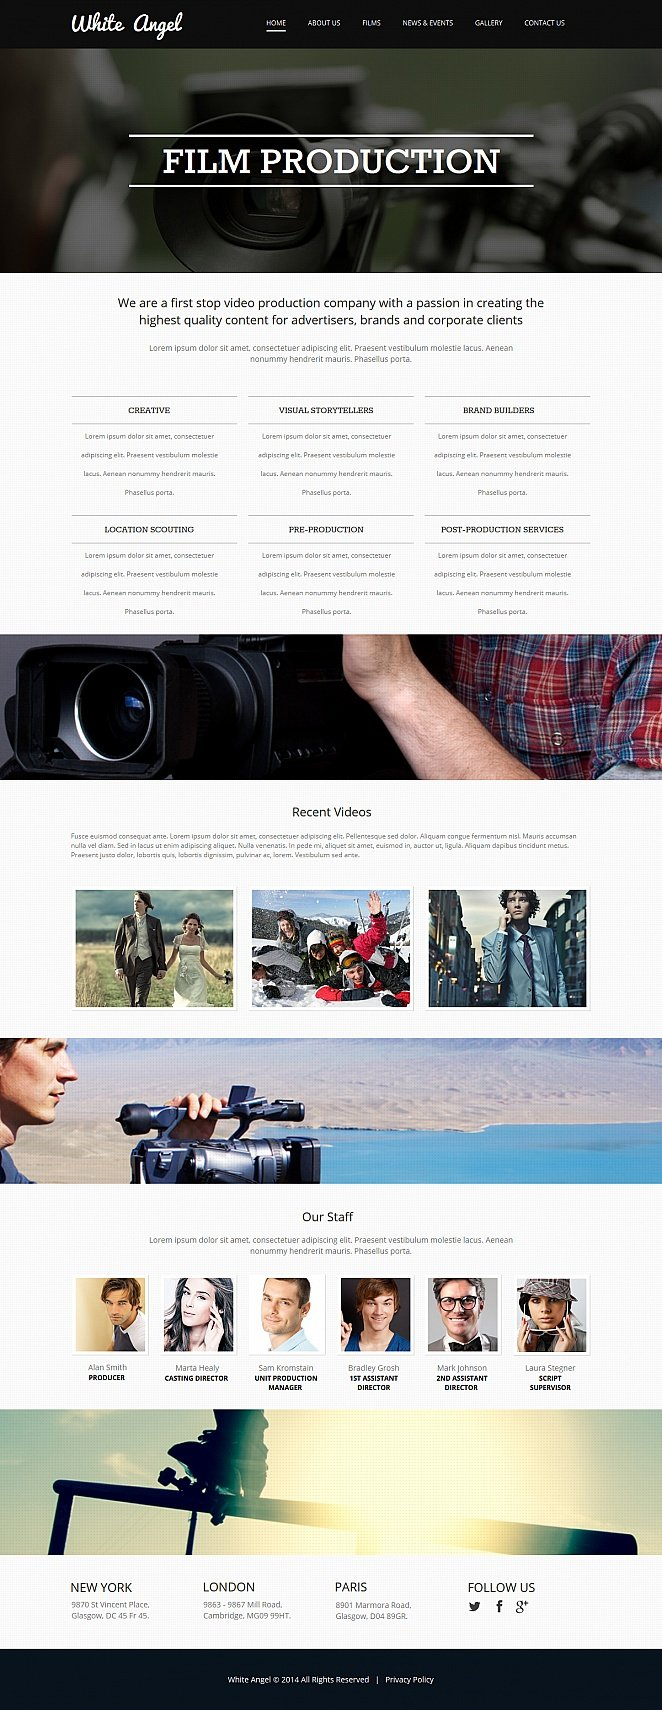 Film Production Website Template with Large Home Page Design | MotoCMS